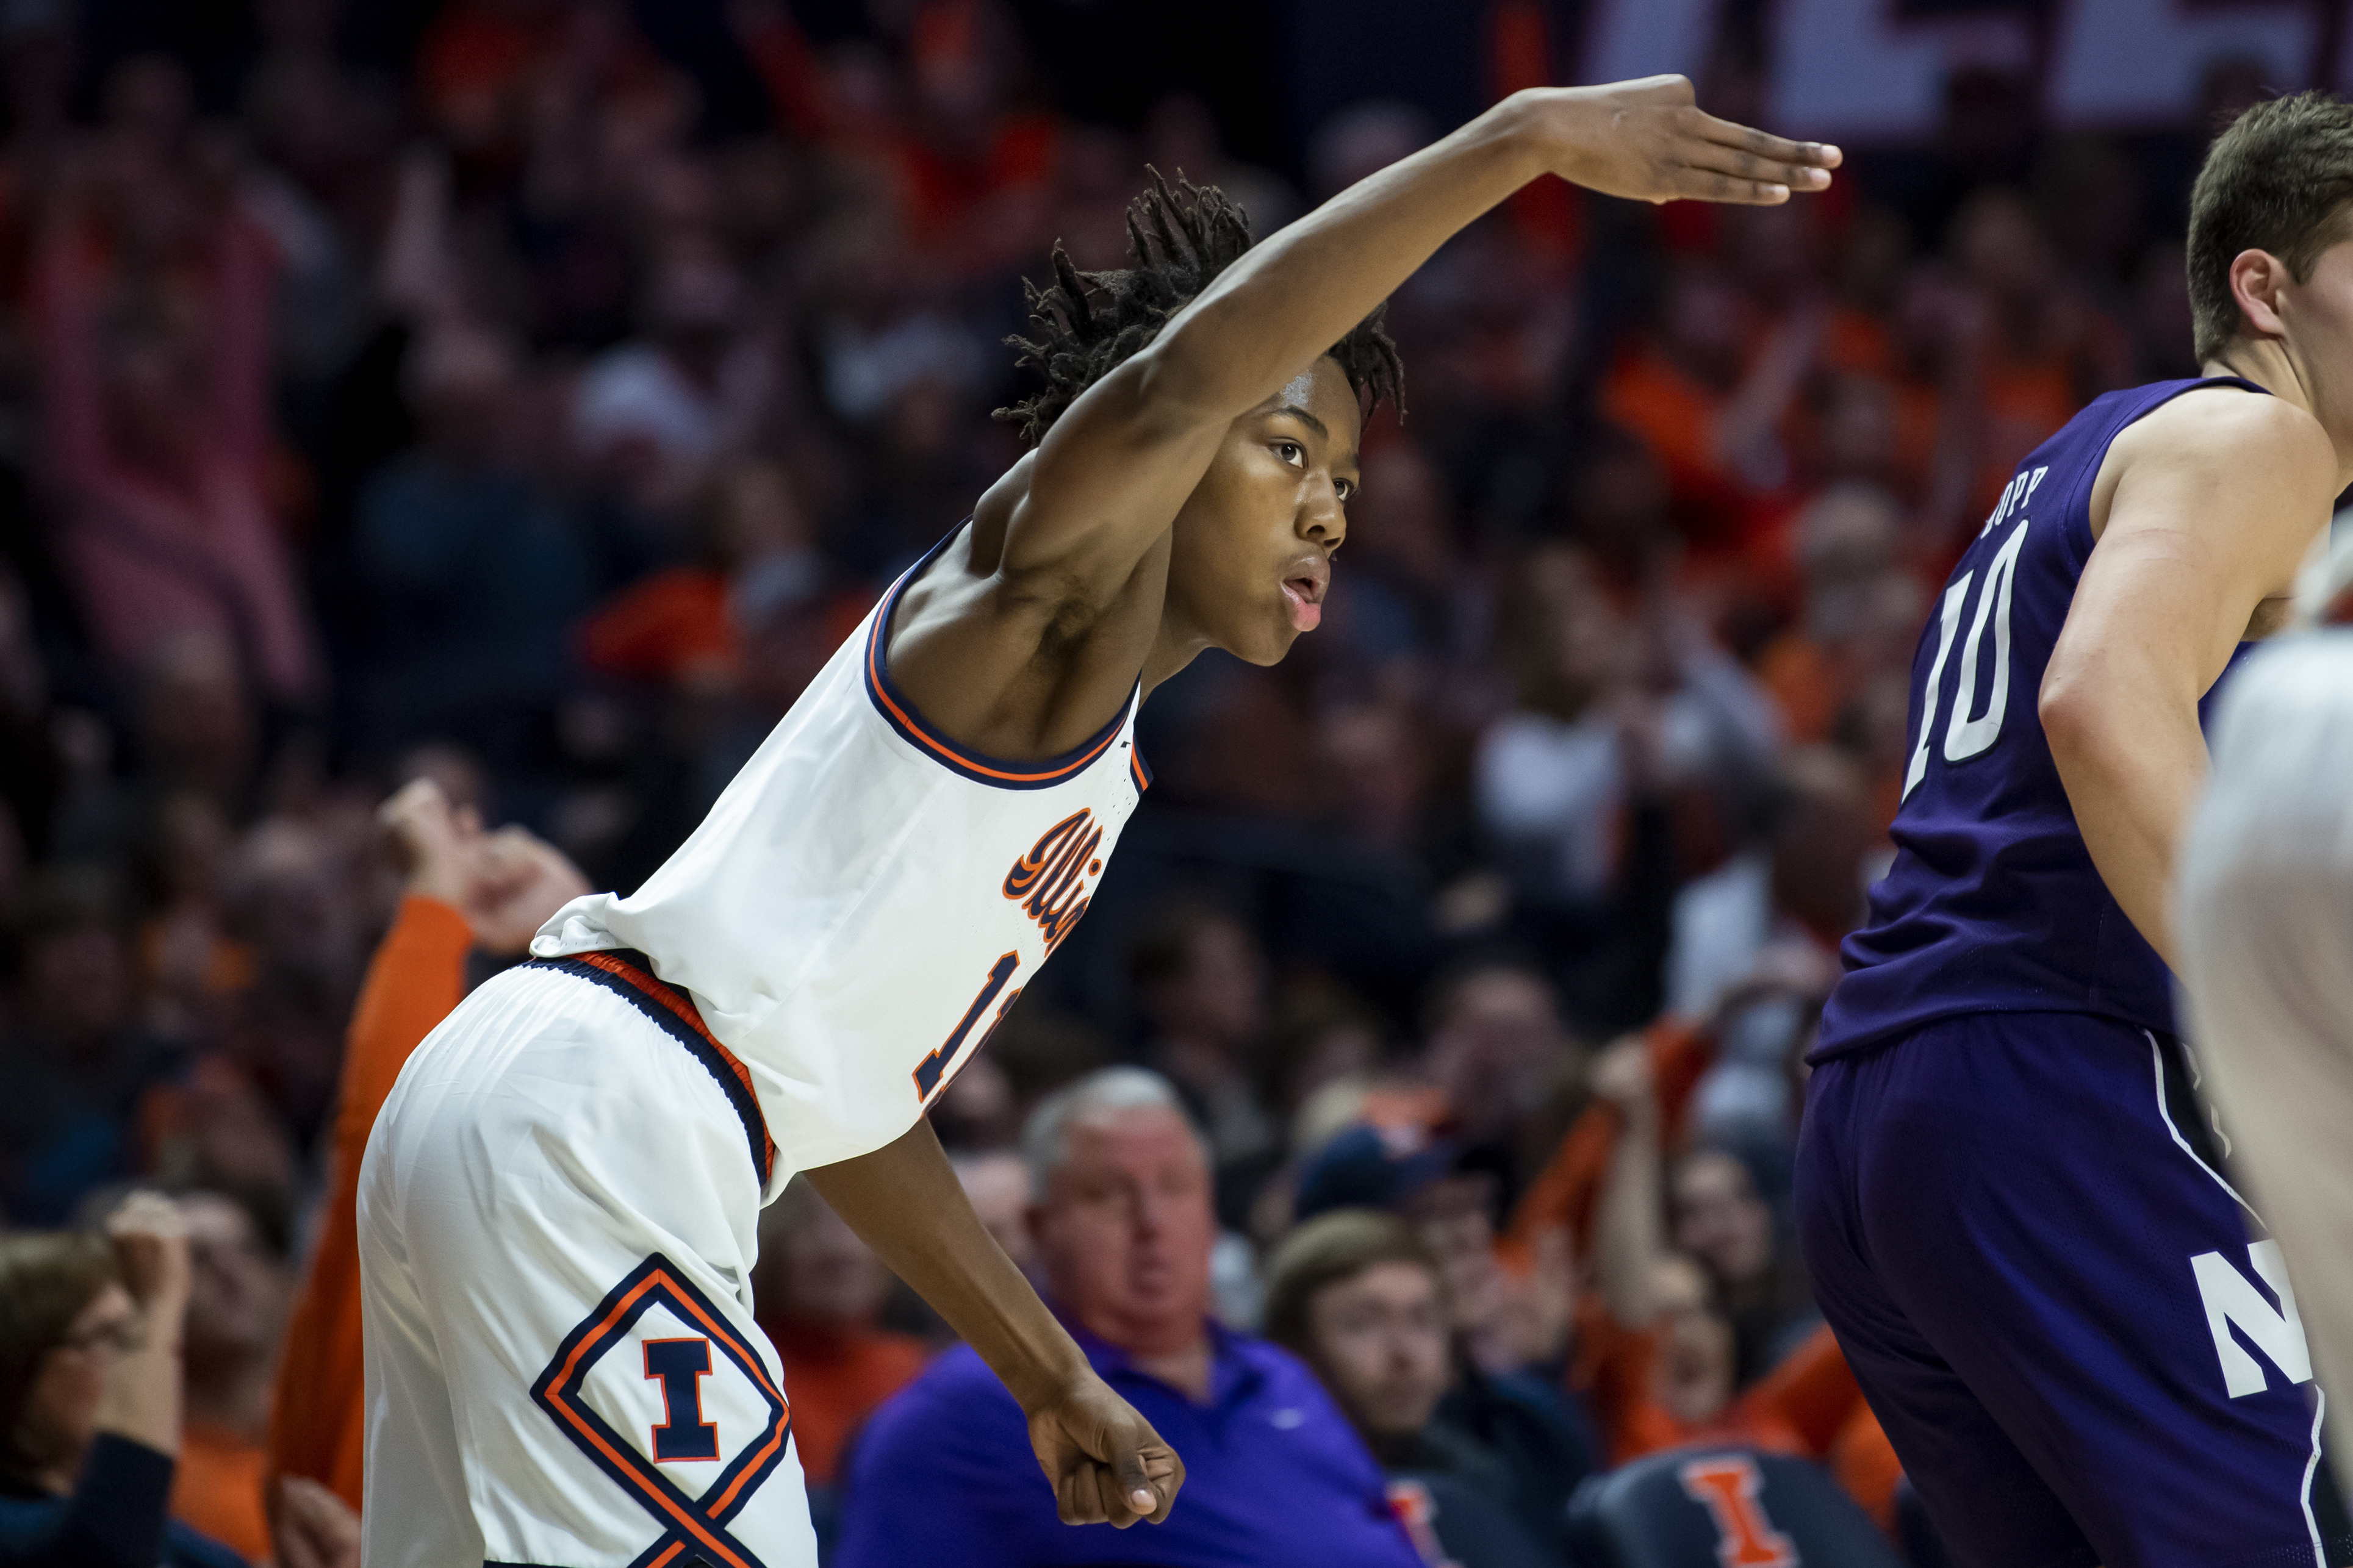 Jan 18, 2020; Champaign, Illinois, USA; Illinois Fighting Illini guard Ayo Dosunmu (11) reacts after his three point shot during the first half against the Northwestern Wildcats at State Farm Center.